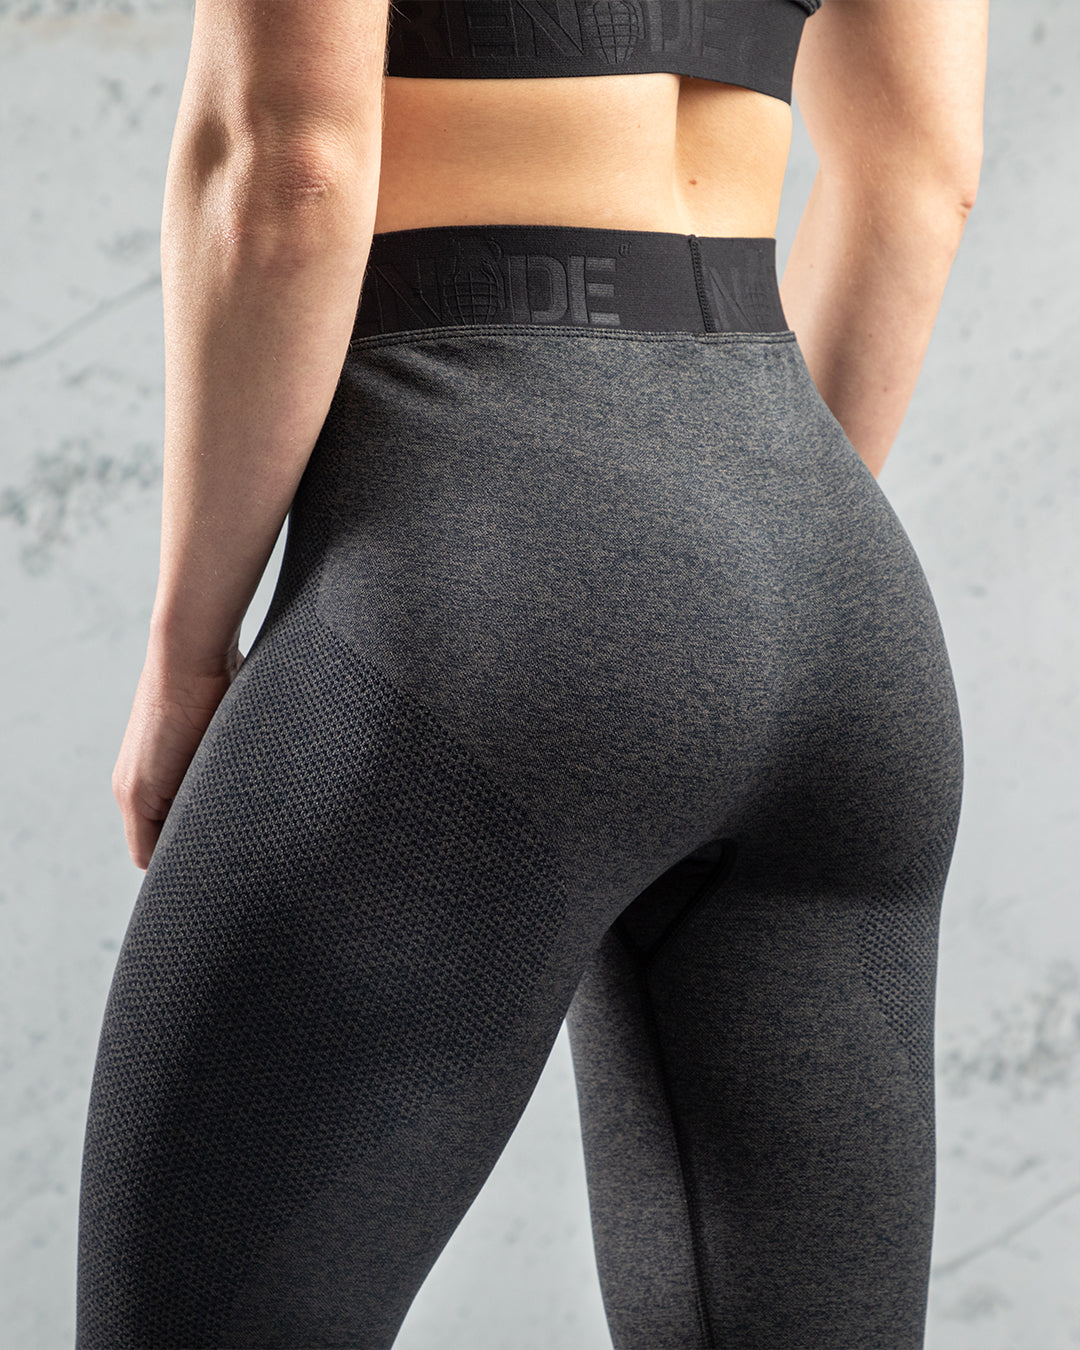 Grenade® Womens Seamless Leggings